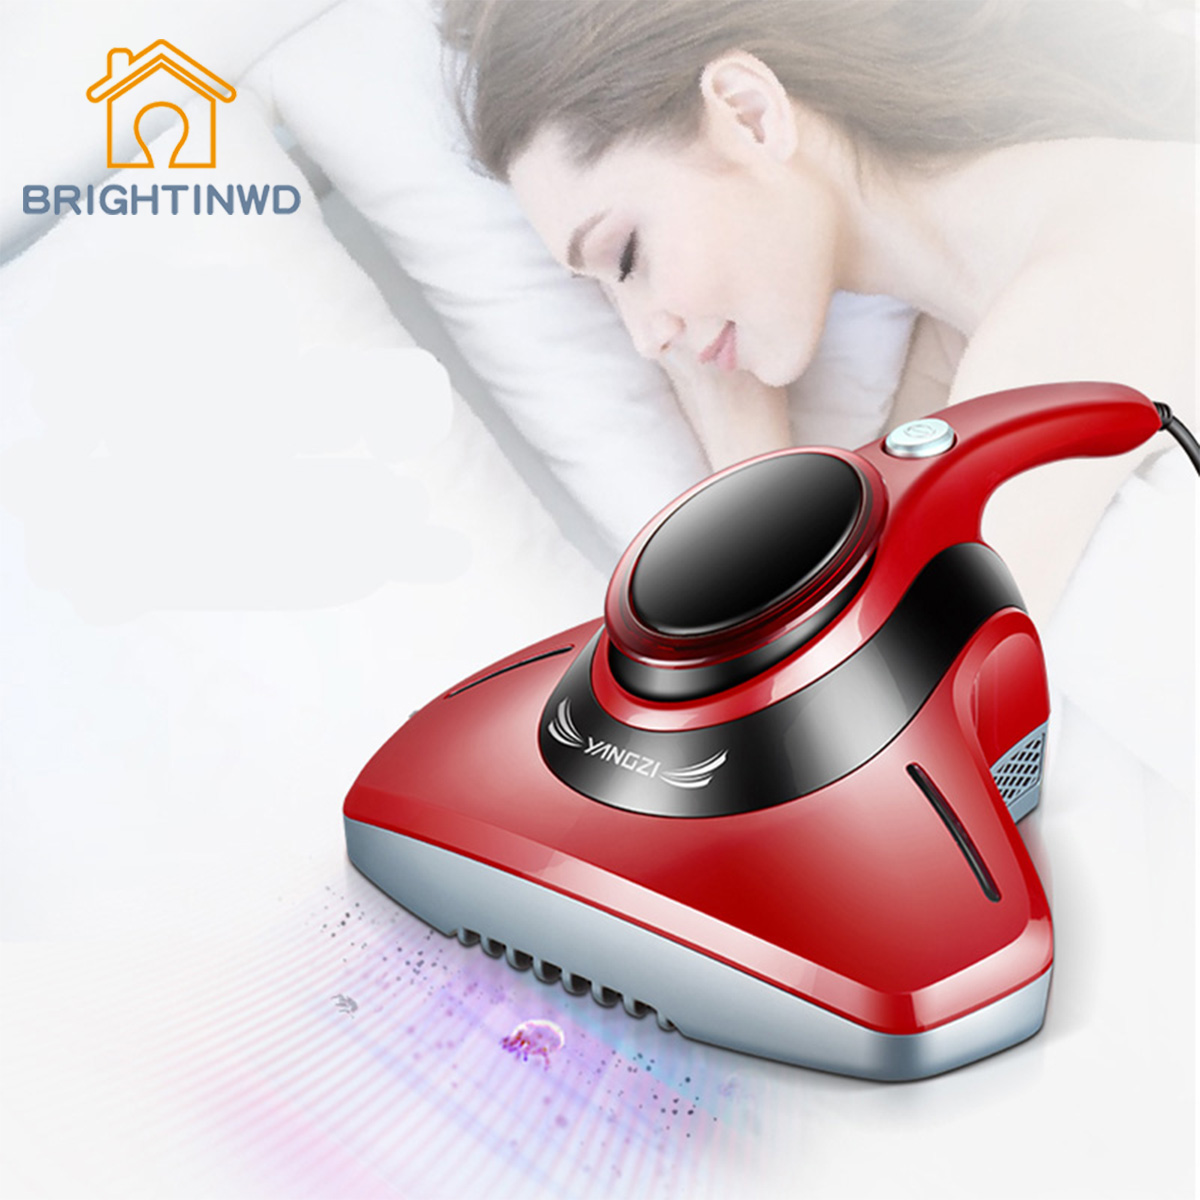 BRIGHTINWD UV Lamp Mite Bed Sterilization Machine In Addition To Mites Vacuum Cleaner Small Mini Dust купить в Москве 2019